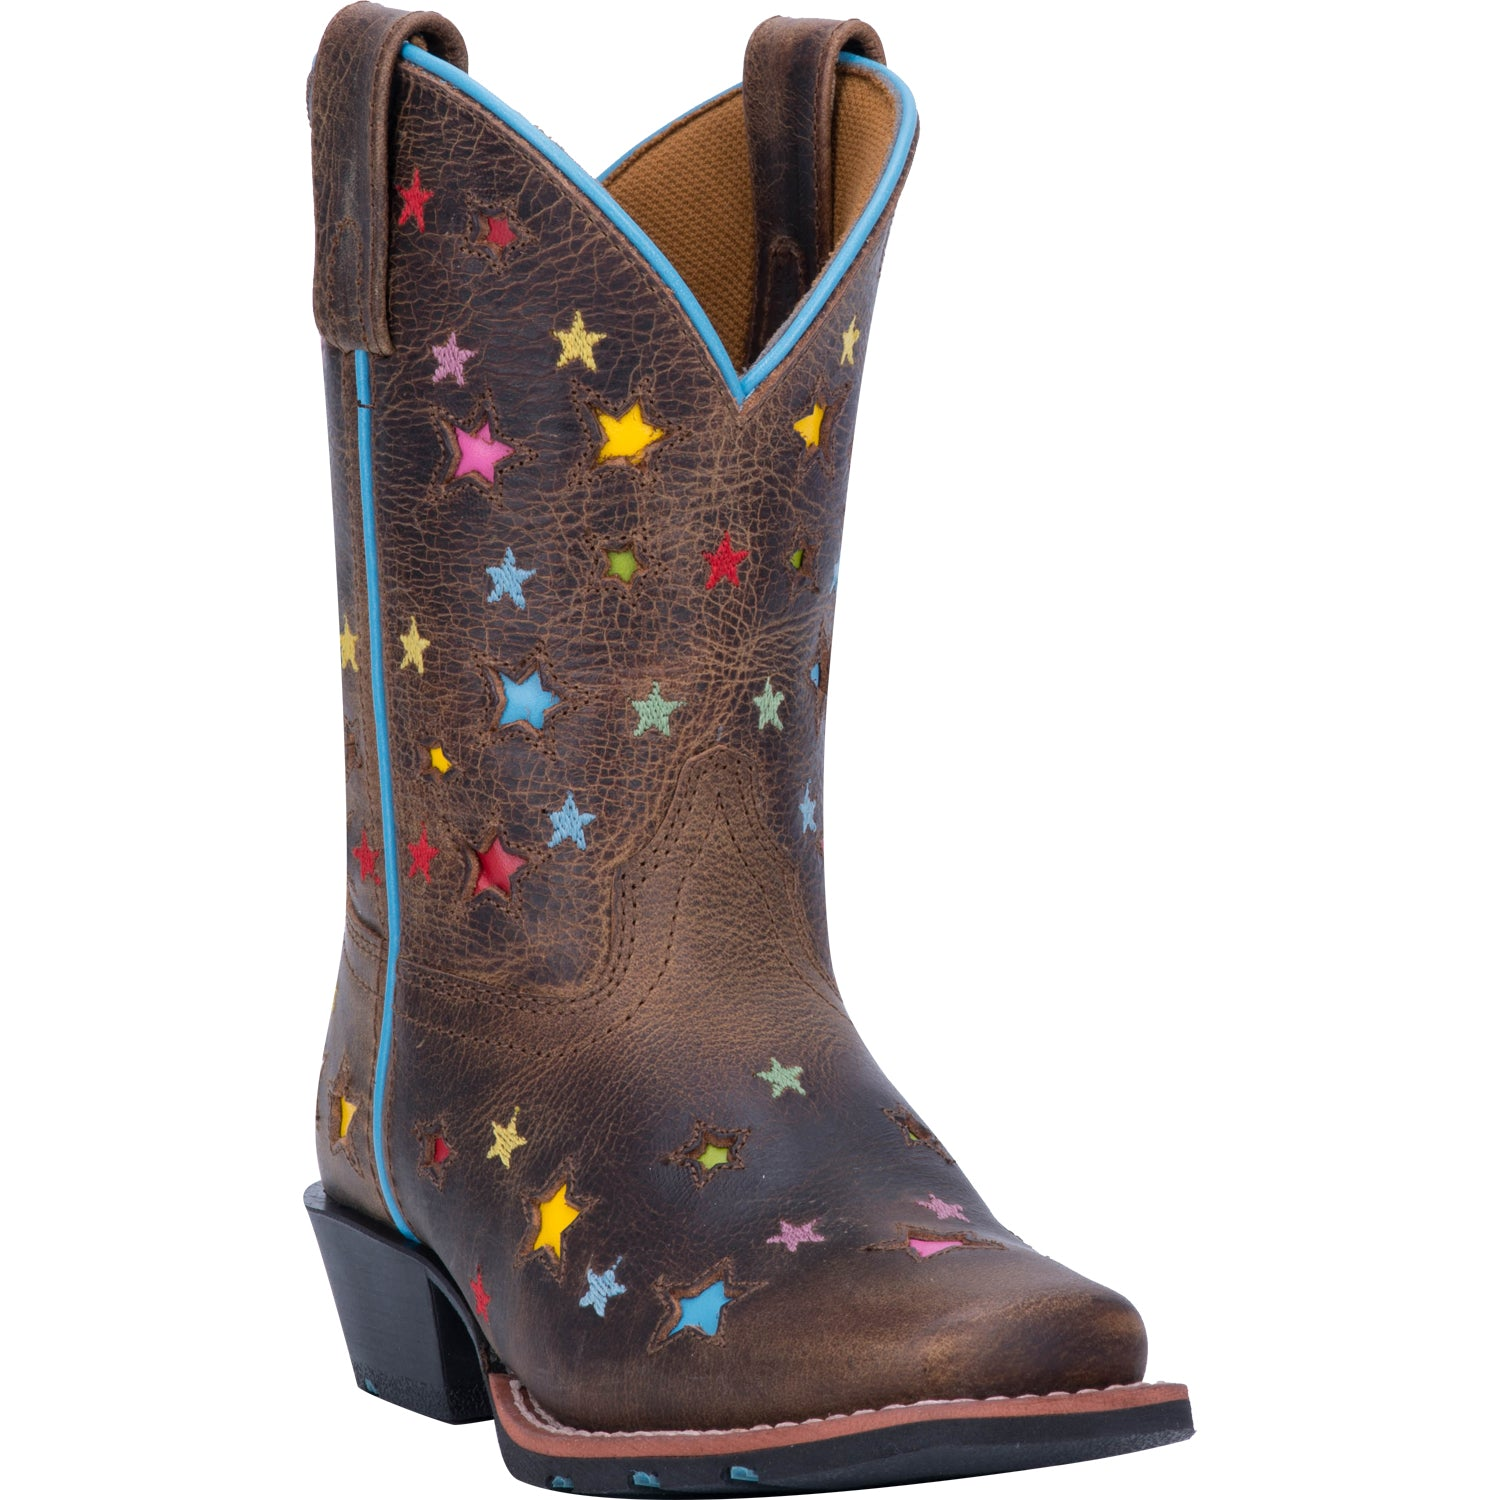 STARLETT LEATHER CHILDREN'S BOOT 15521811267626